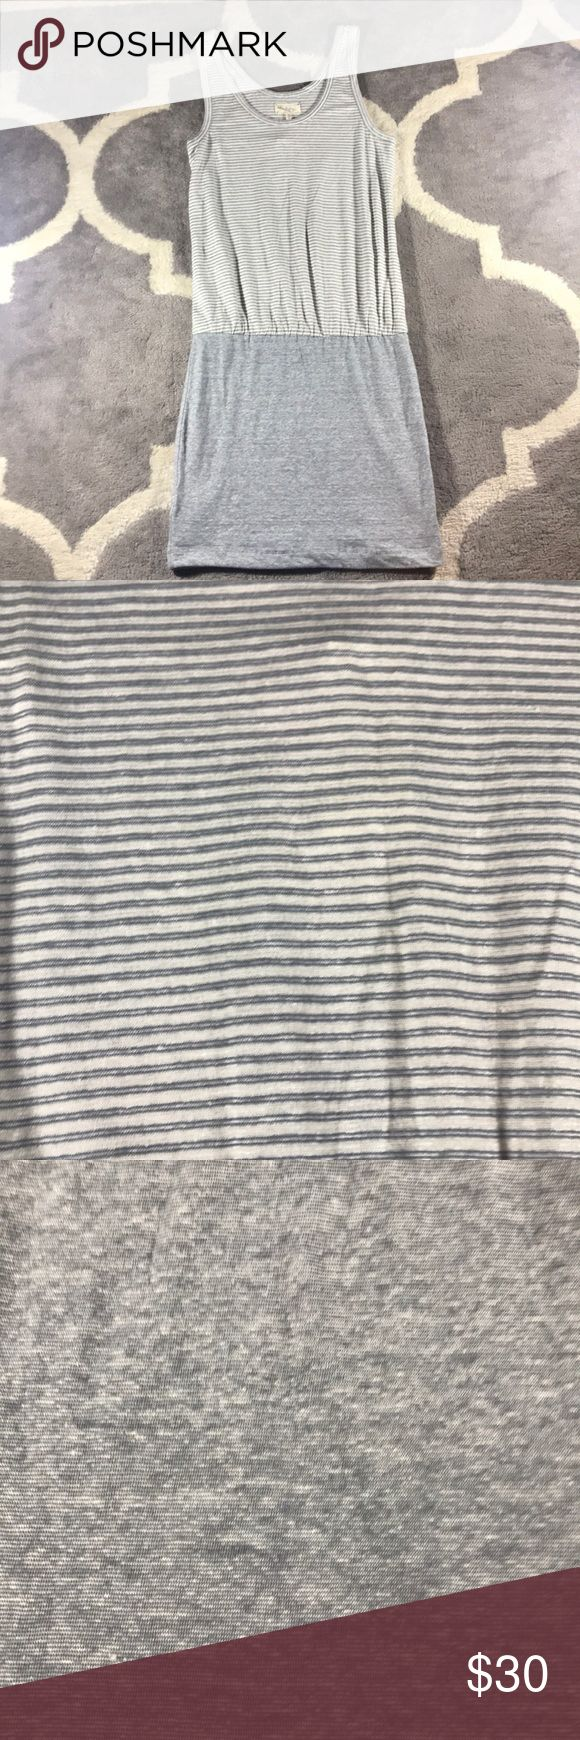 NWT Lou & Grey Loft summer dress NWT Lou & Grey Loft grey striped dress! Perfect for the summer/beach dress! Material tag is cut out   🔹armpit to armpit 16 inches  🔹length 39 inches  🔹condition- NWT never been worn Lou & Grey Dresses